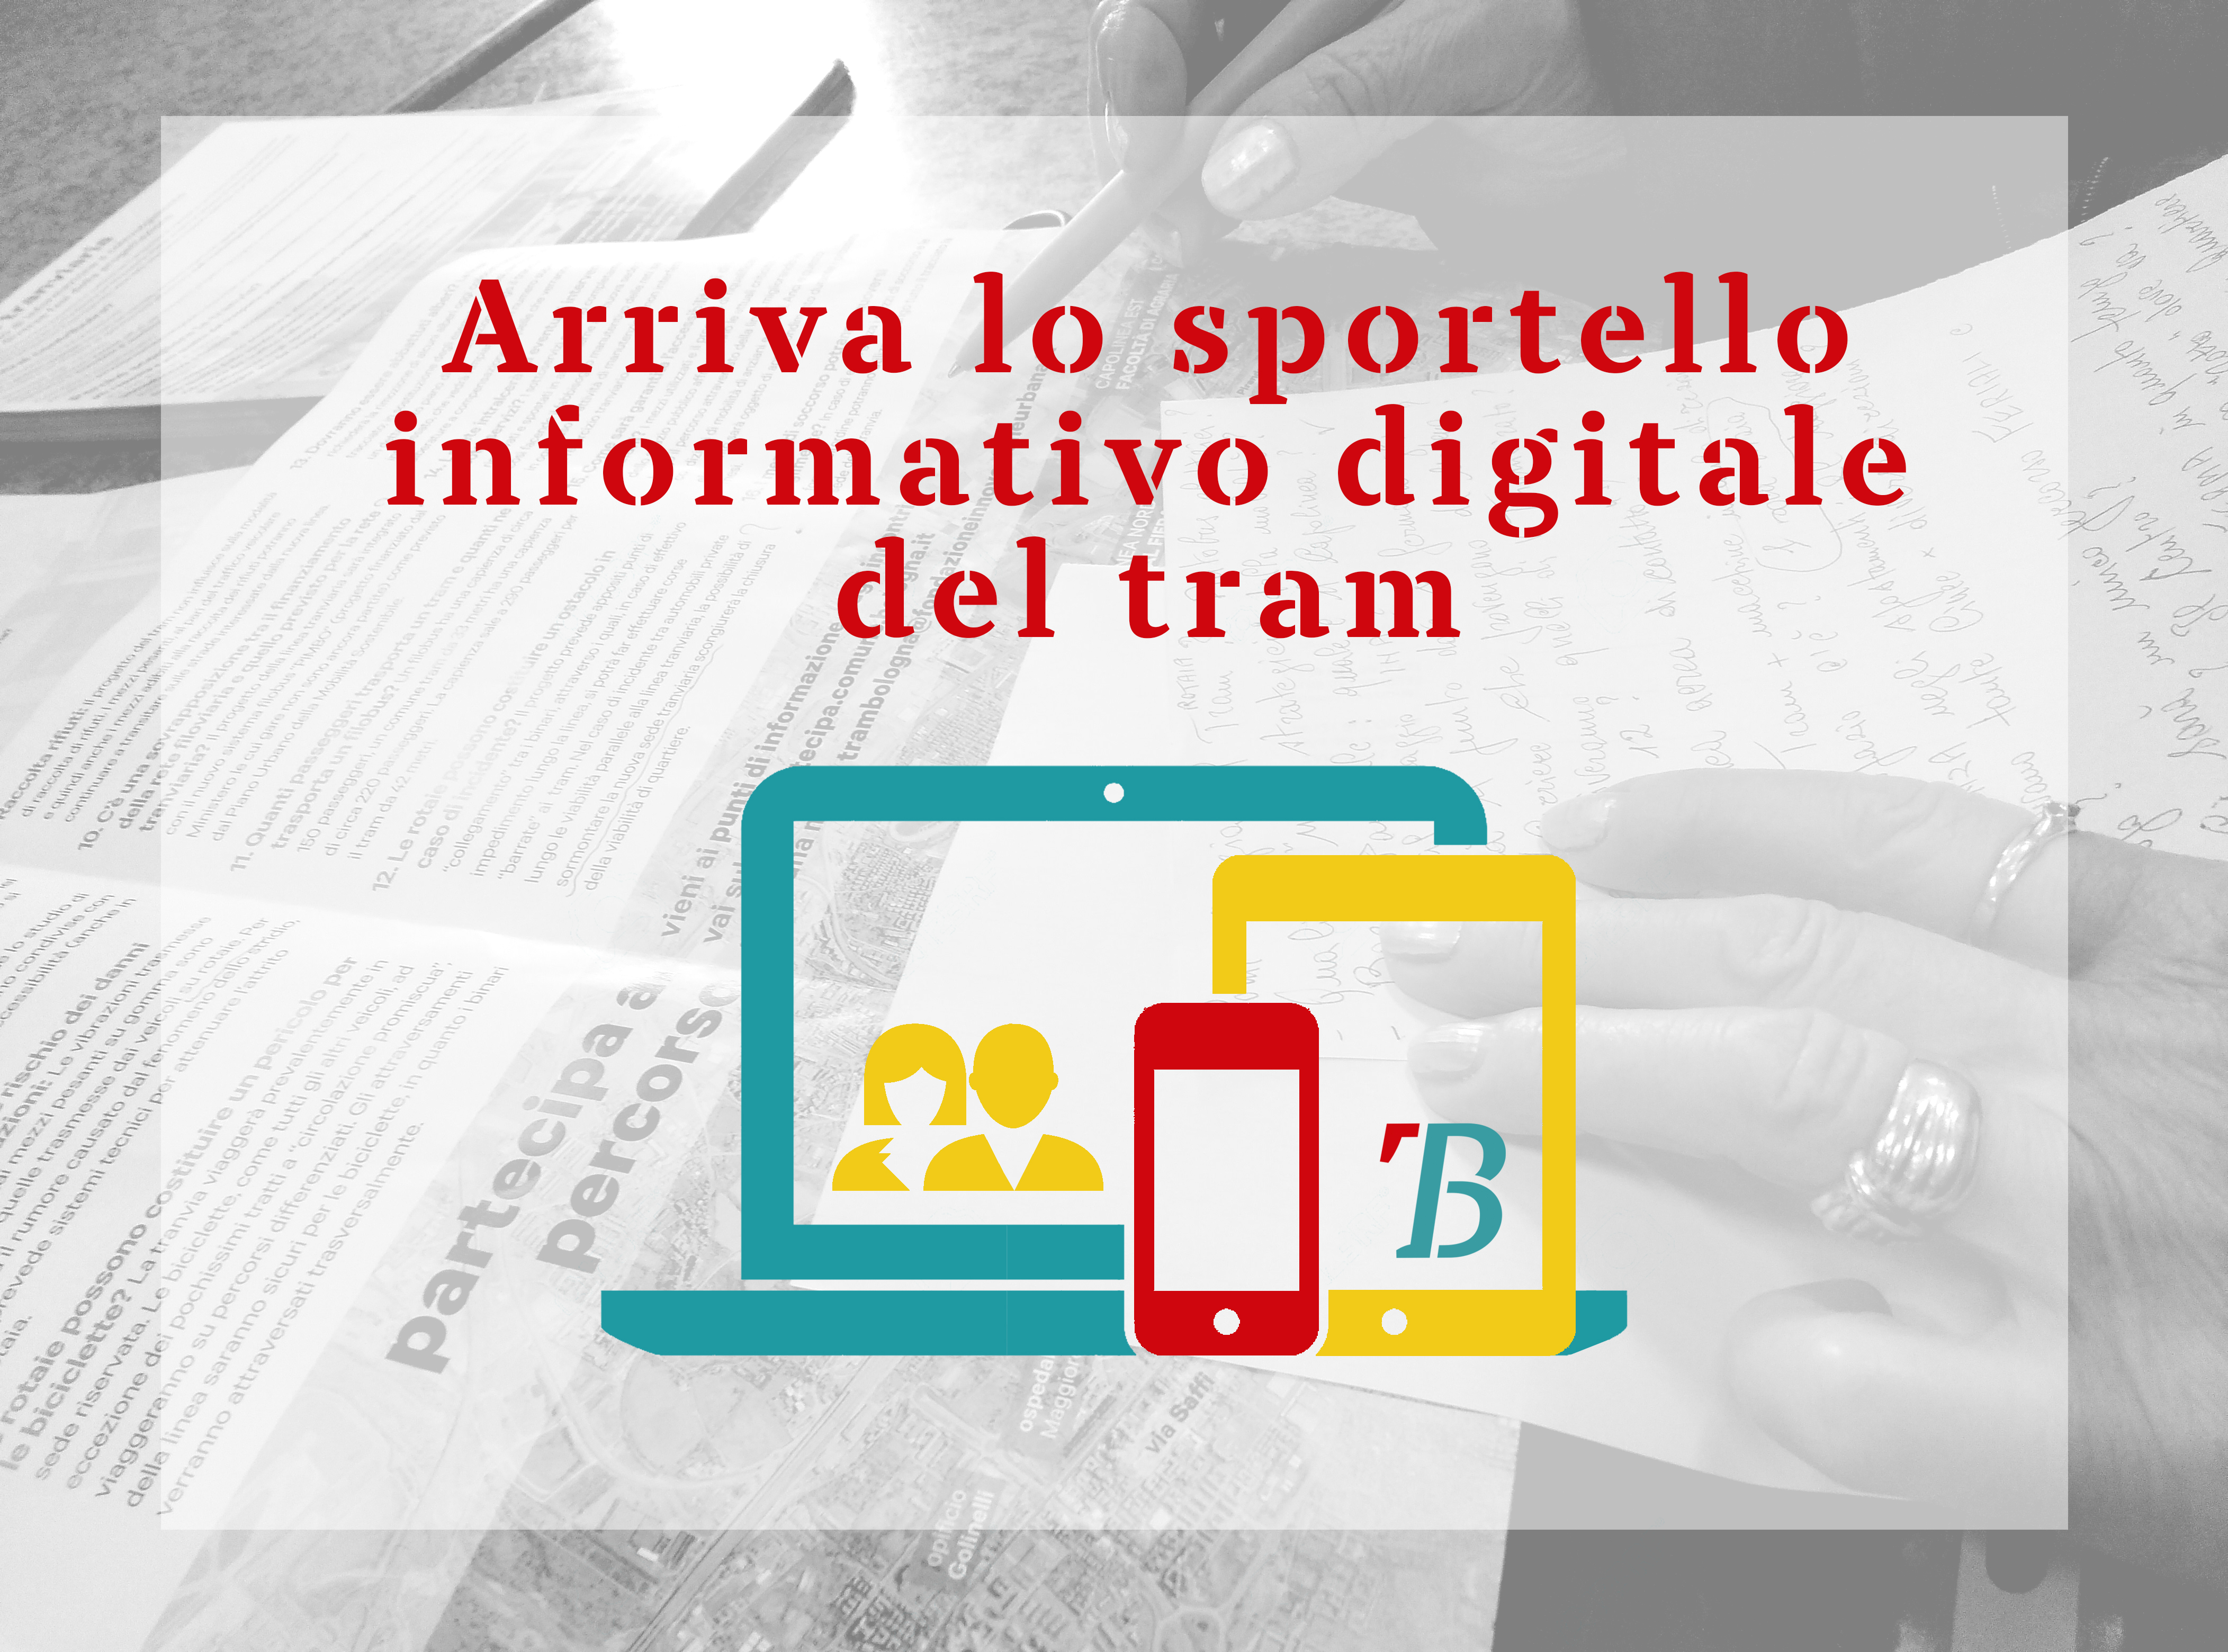 2020 TRAM grafica sportello digitale